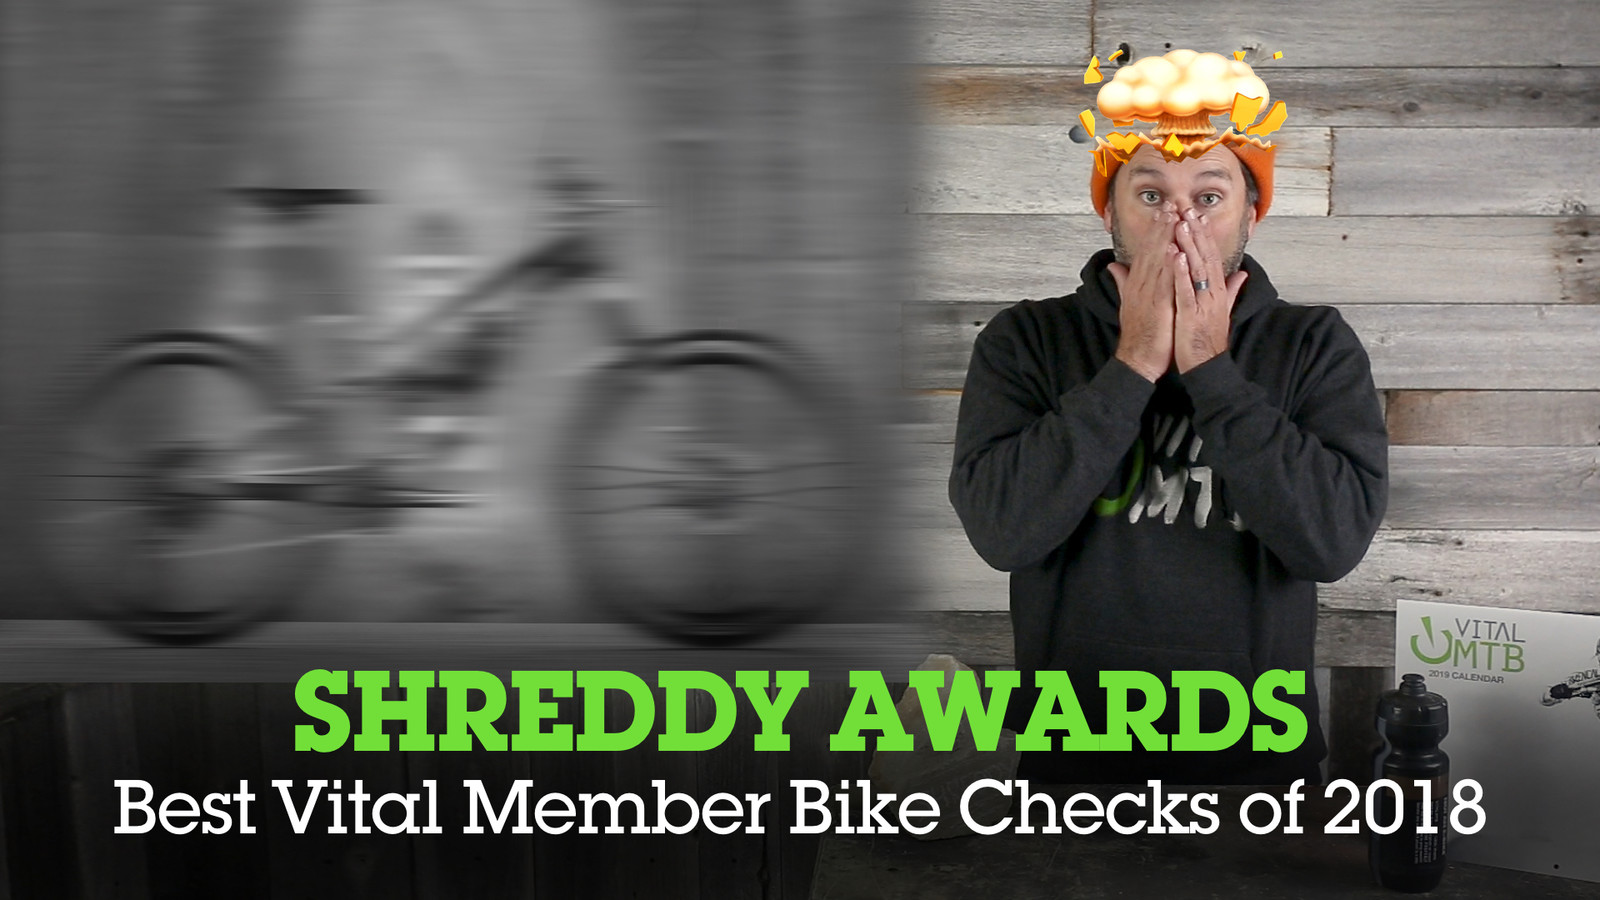 The Best Vital MTB Member Bike Checks - Shreddy Awards